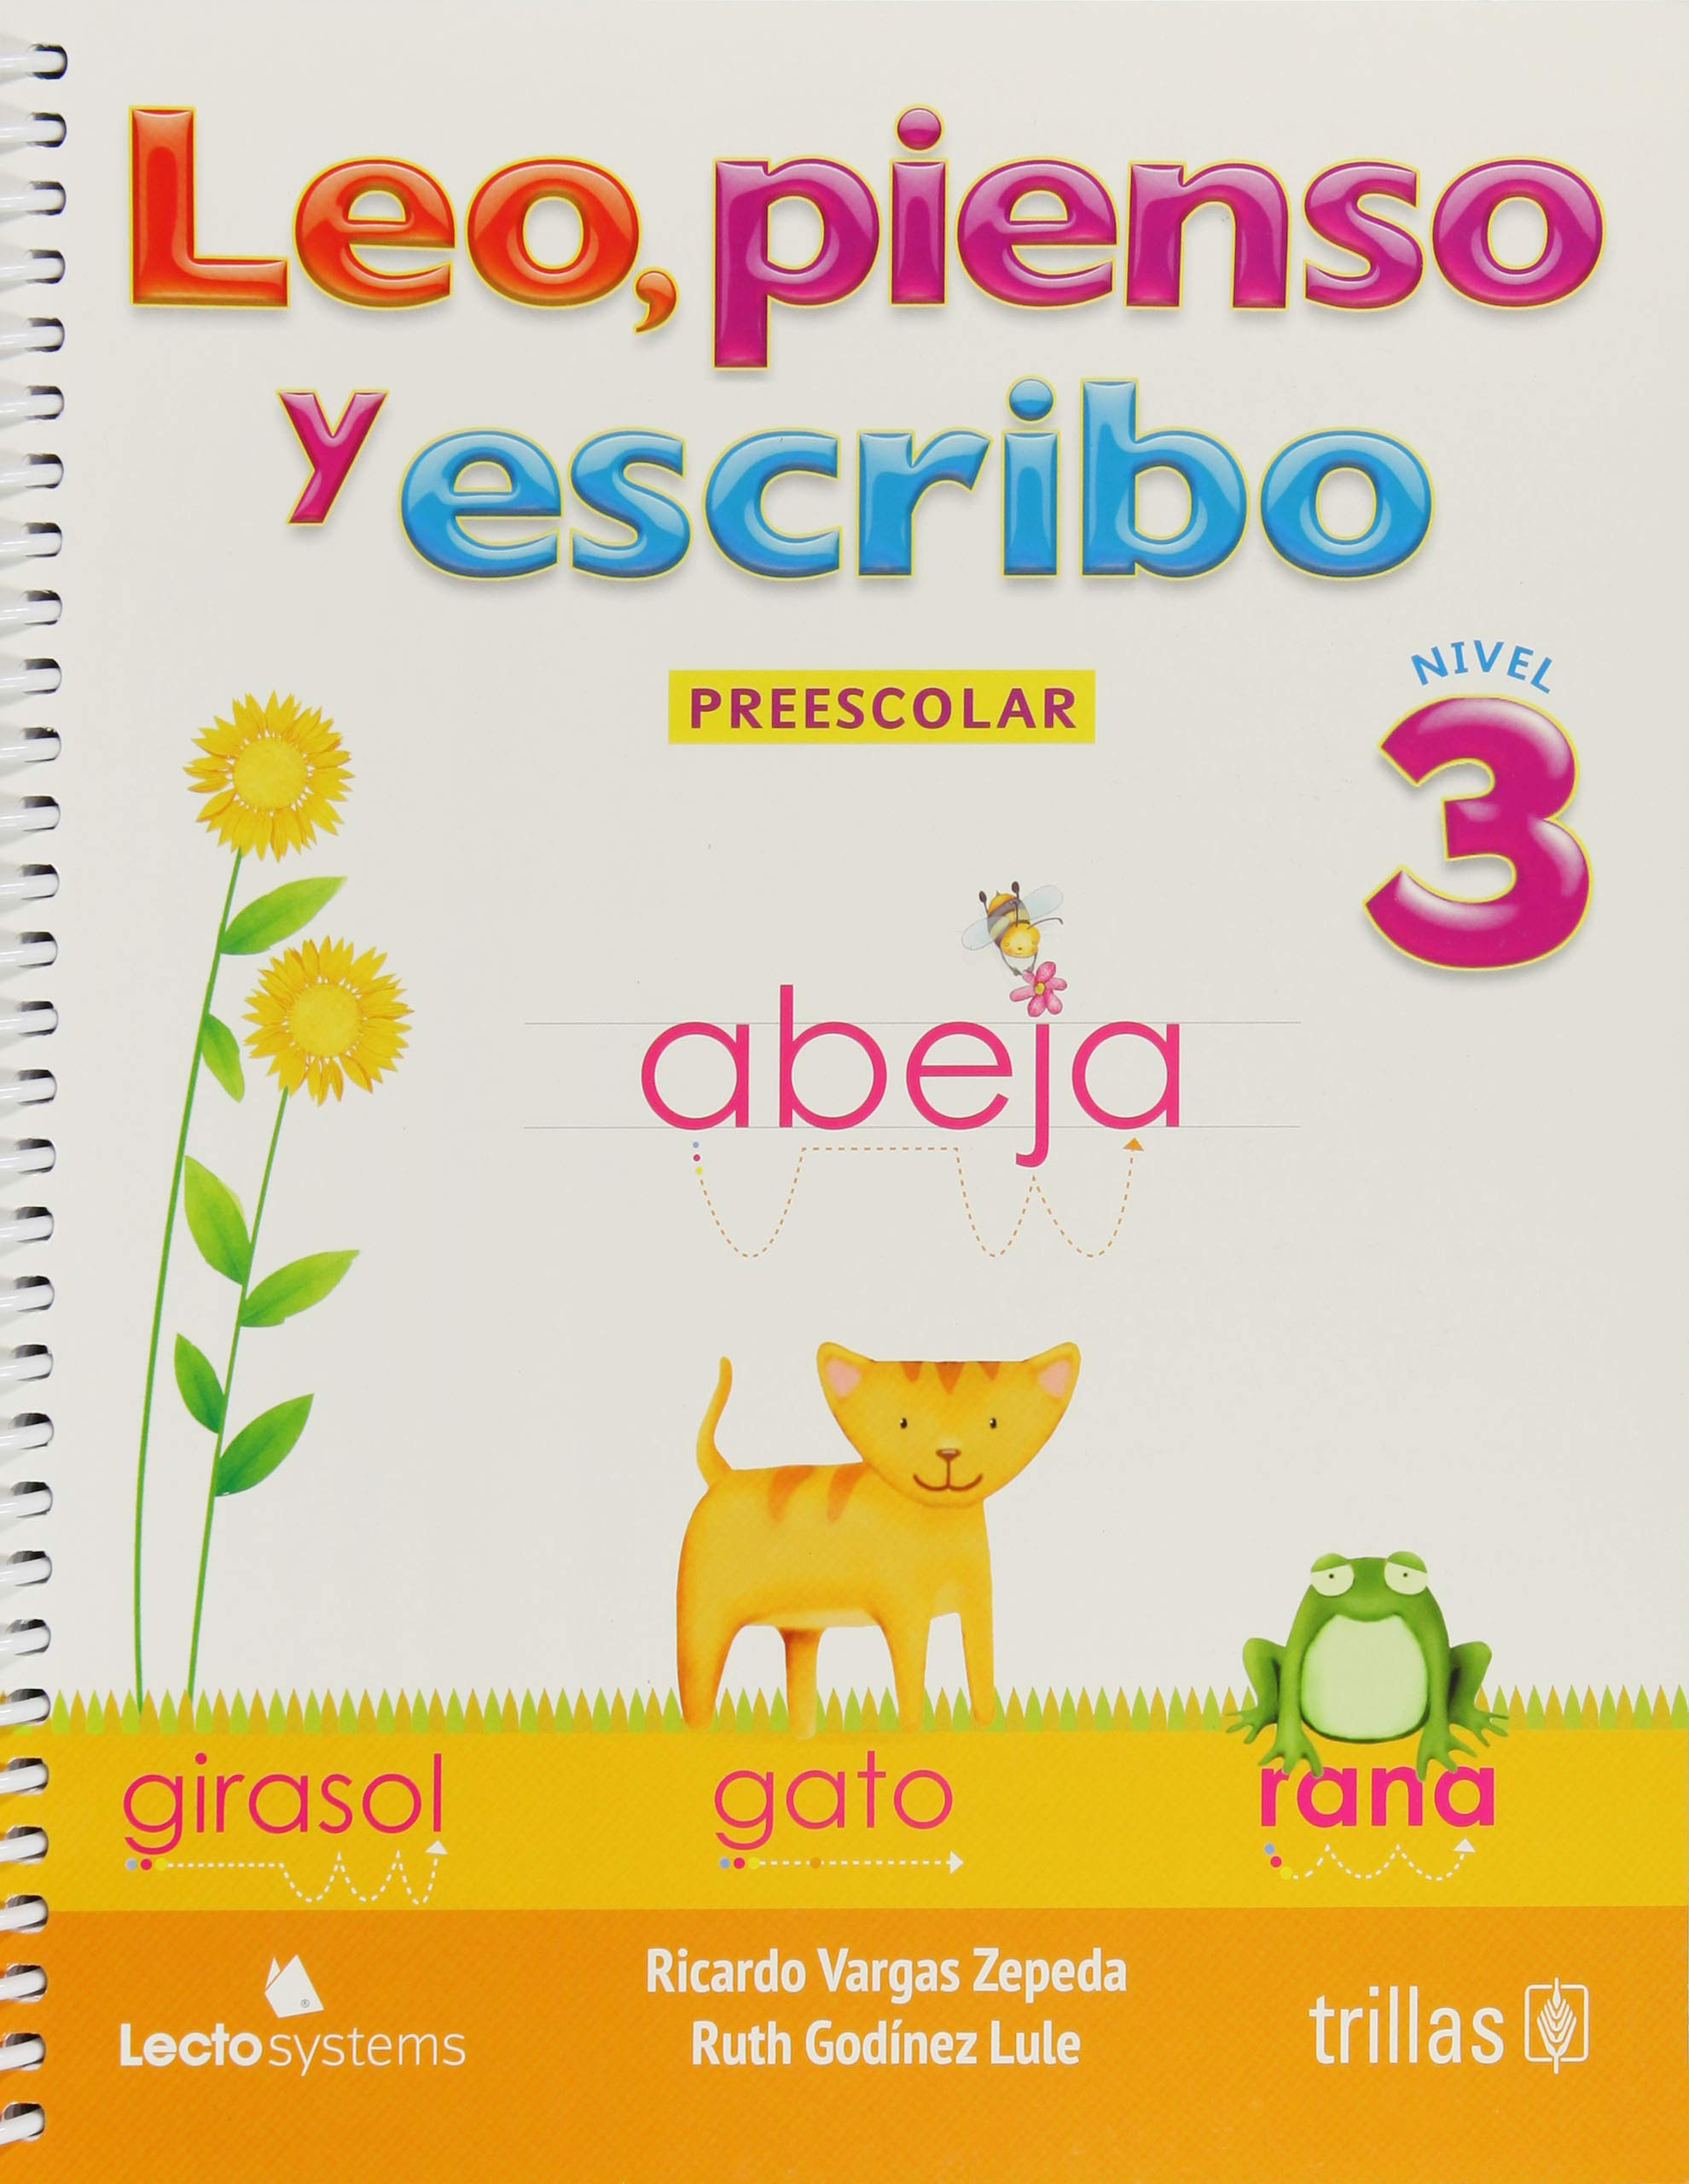 Leo, pienso y escribo / Read, think and write: Nivel 3 De Preescolar / Preschool Level 3 (Spanish Edition) (Spanish) Paperback – July 25, 2013